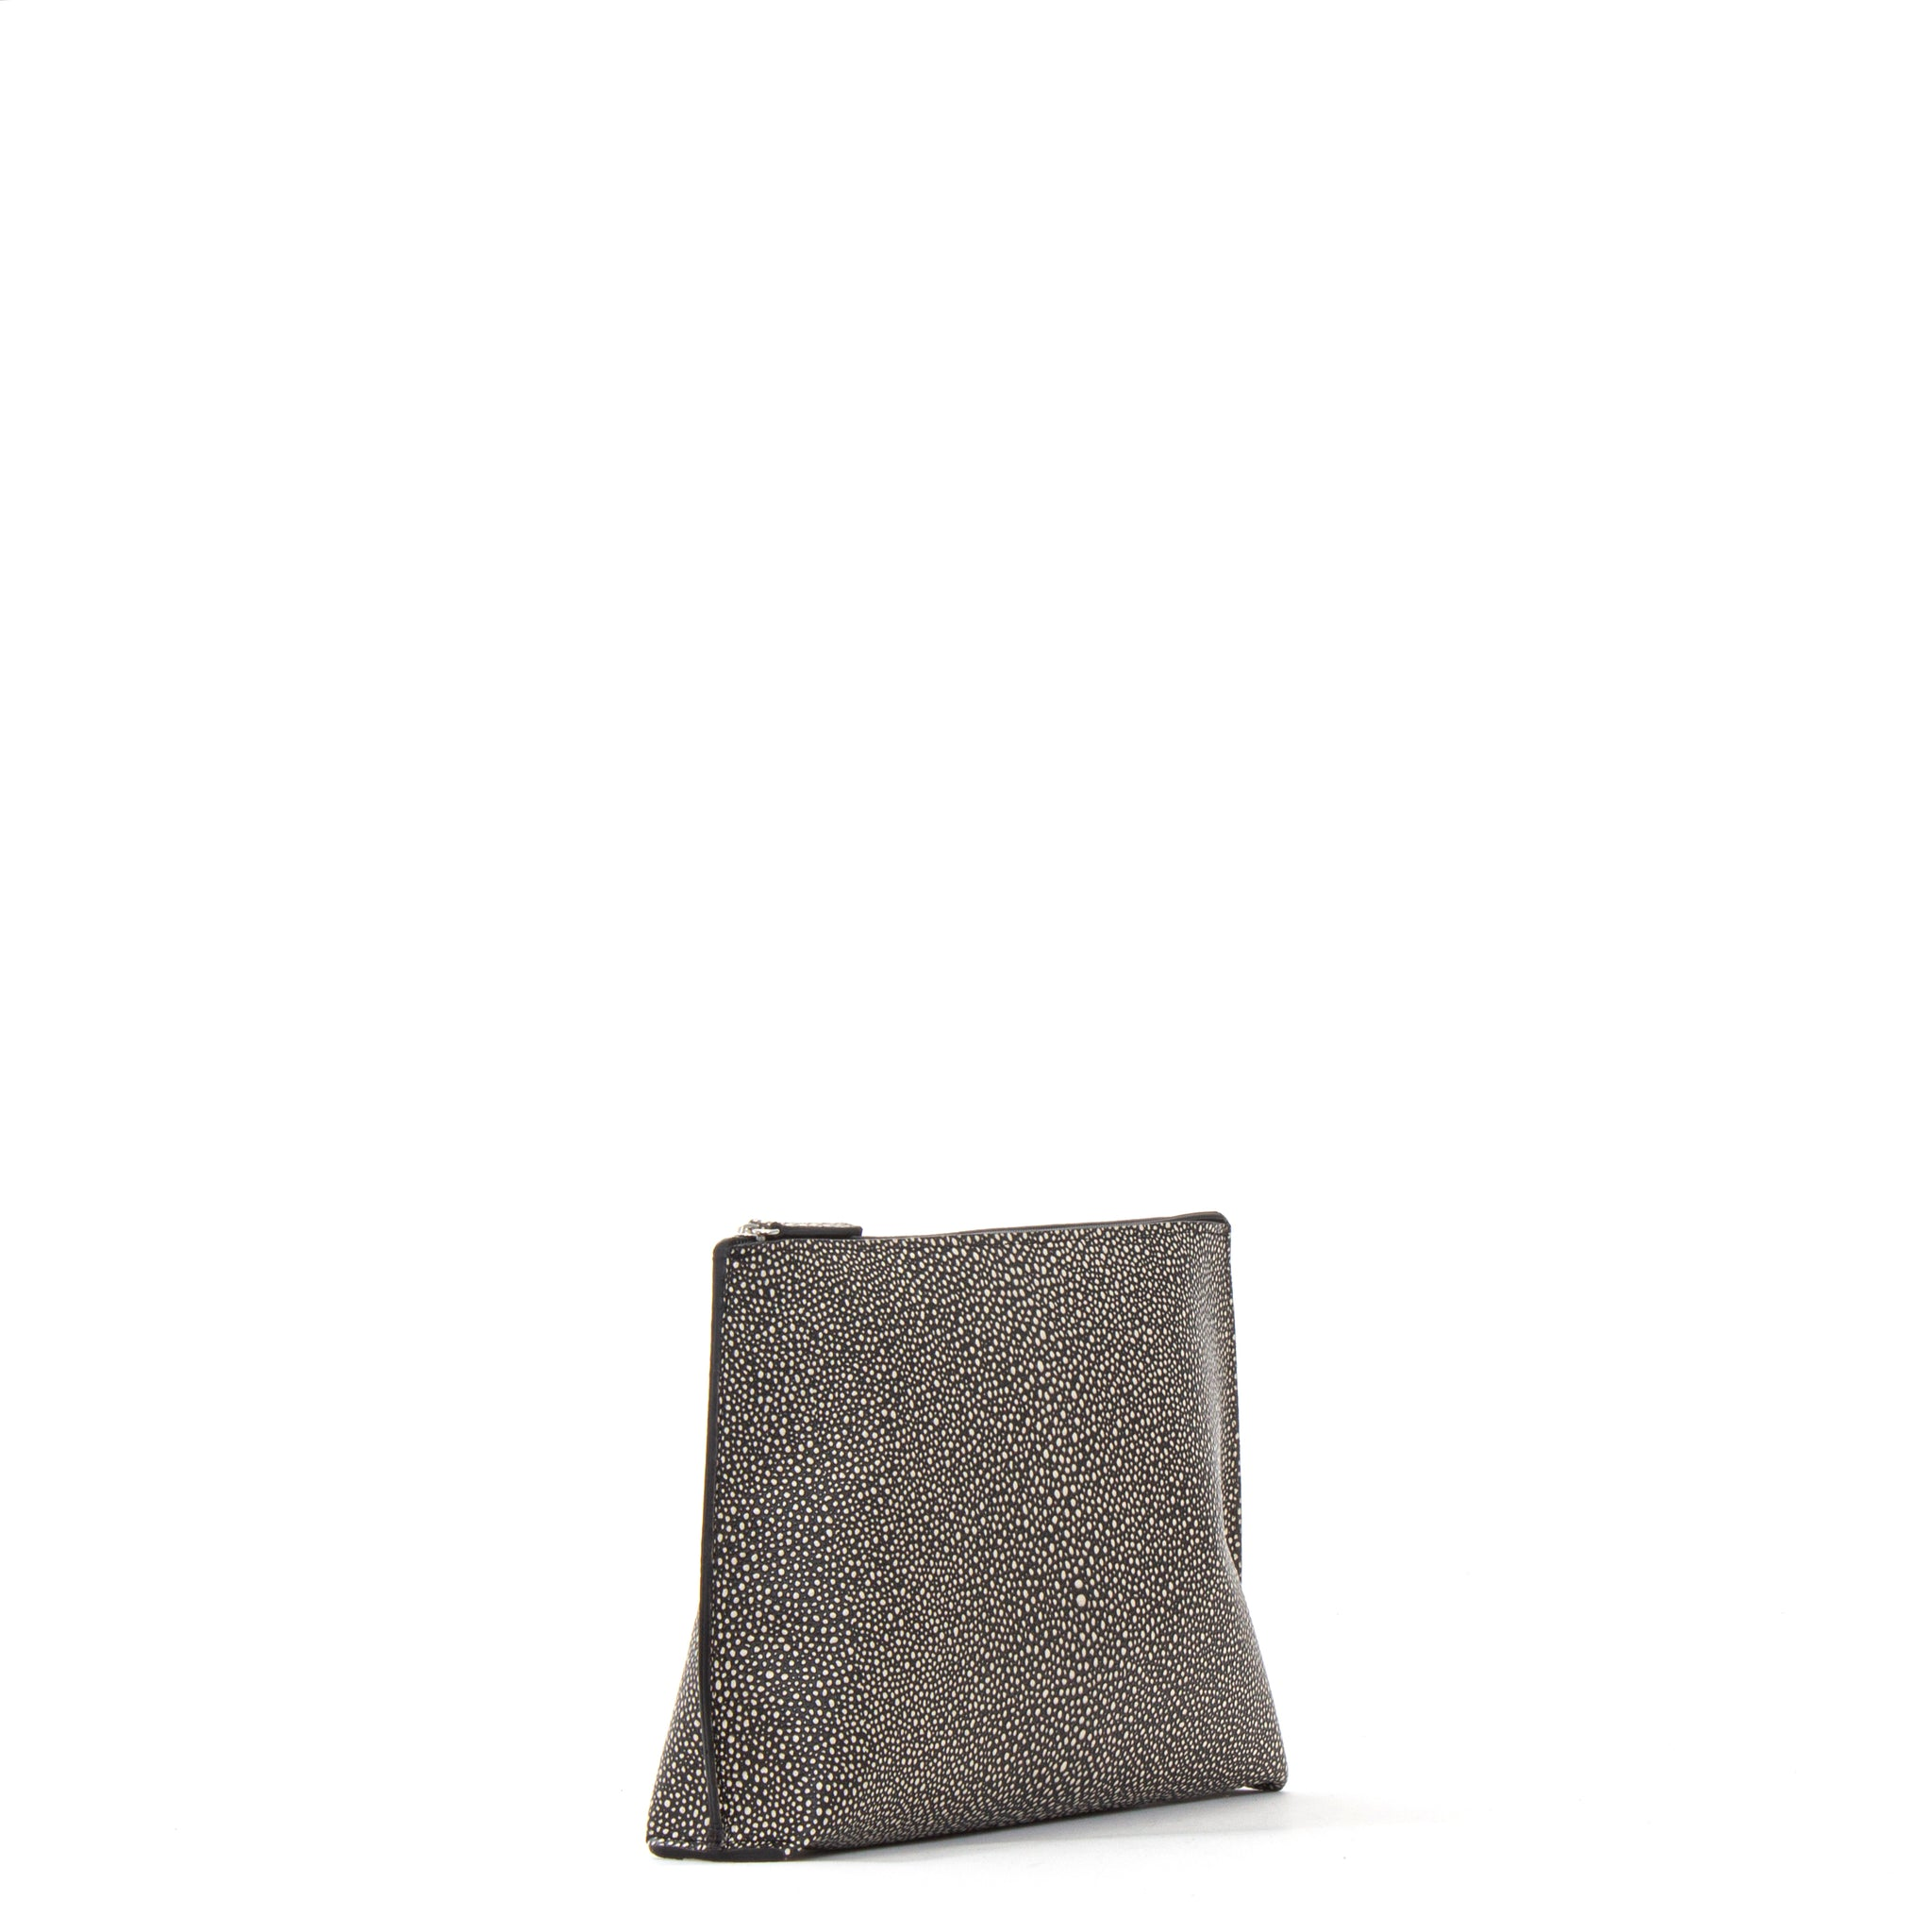 EVERYDAY POUCH BLACK SHAGREEN